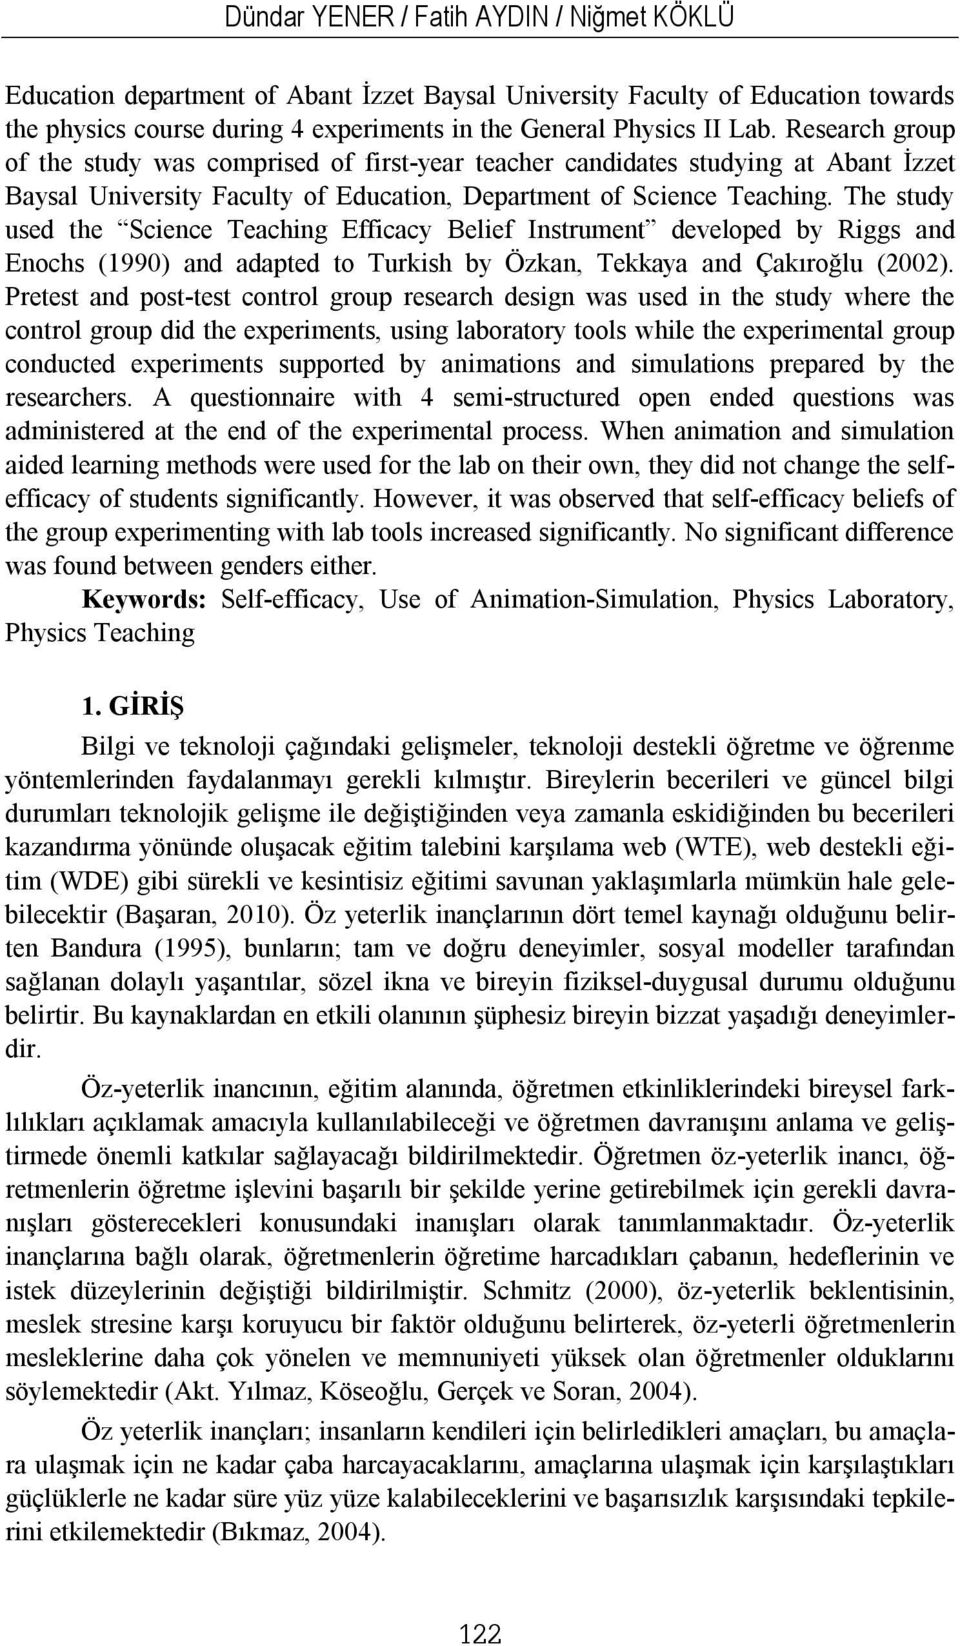 The study used the Science Teaching Efficacy Belief Instrument developed by Riggs and Enochs (1990) and adapted to Turkish by Özkan, Tekkaya and Çakıroğlu (2002).